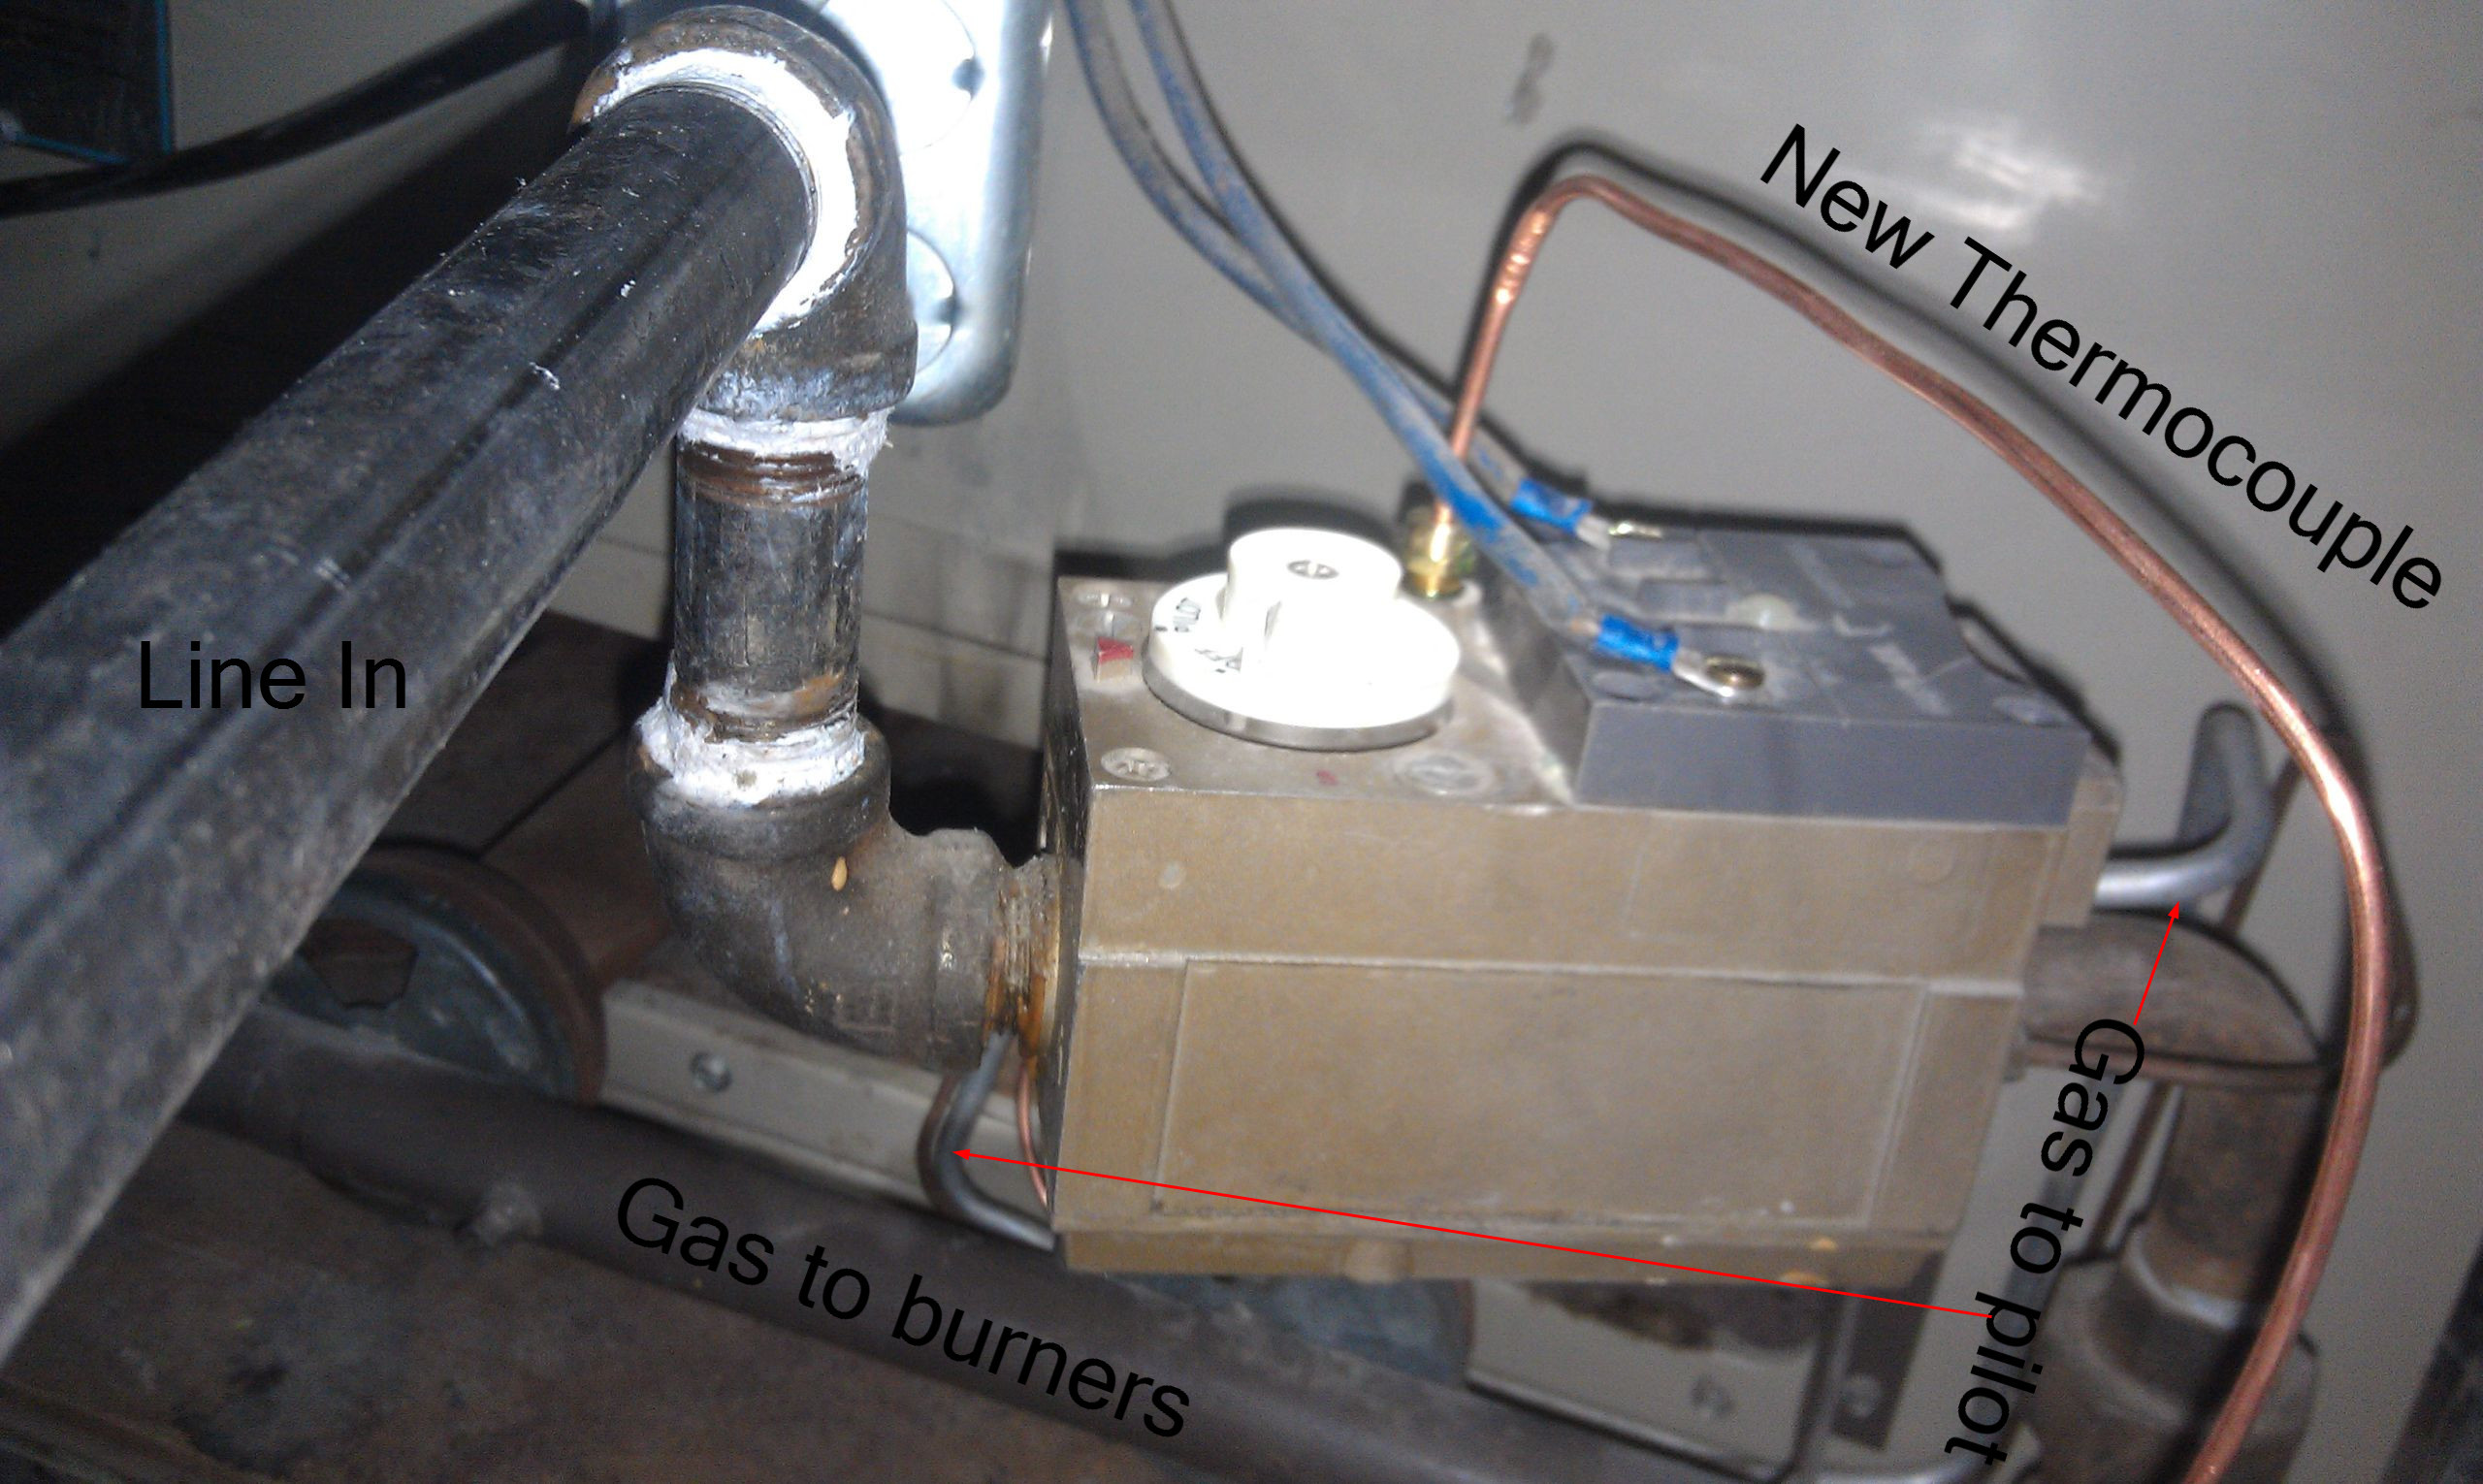 Gas Fireplace Pilot Light Out Furnace Pilot Won T Stay Lit After Replacing Thermocouple Home